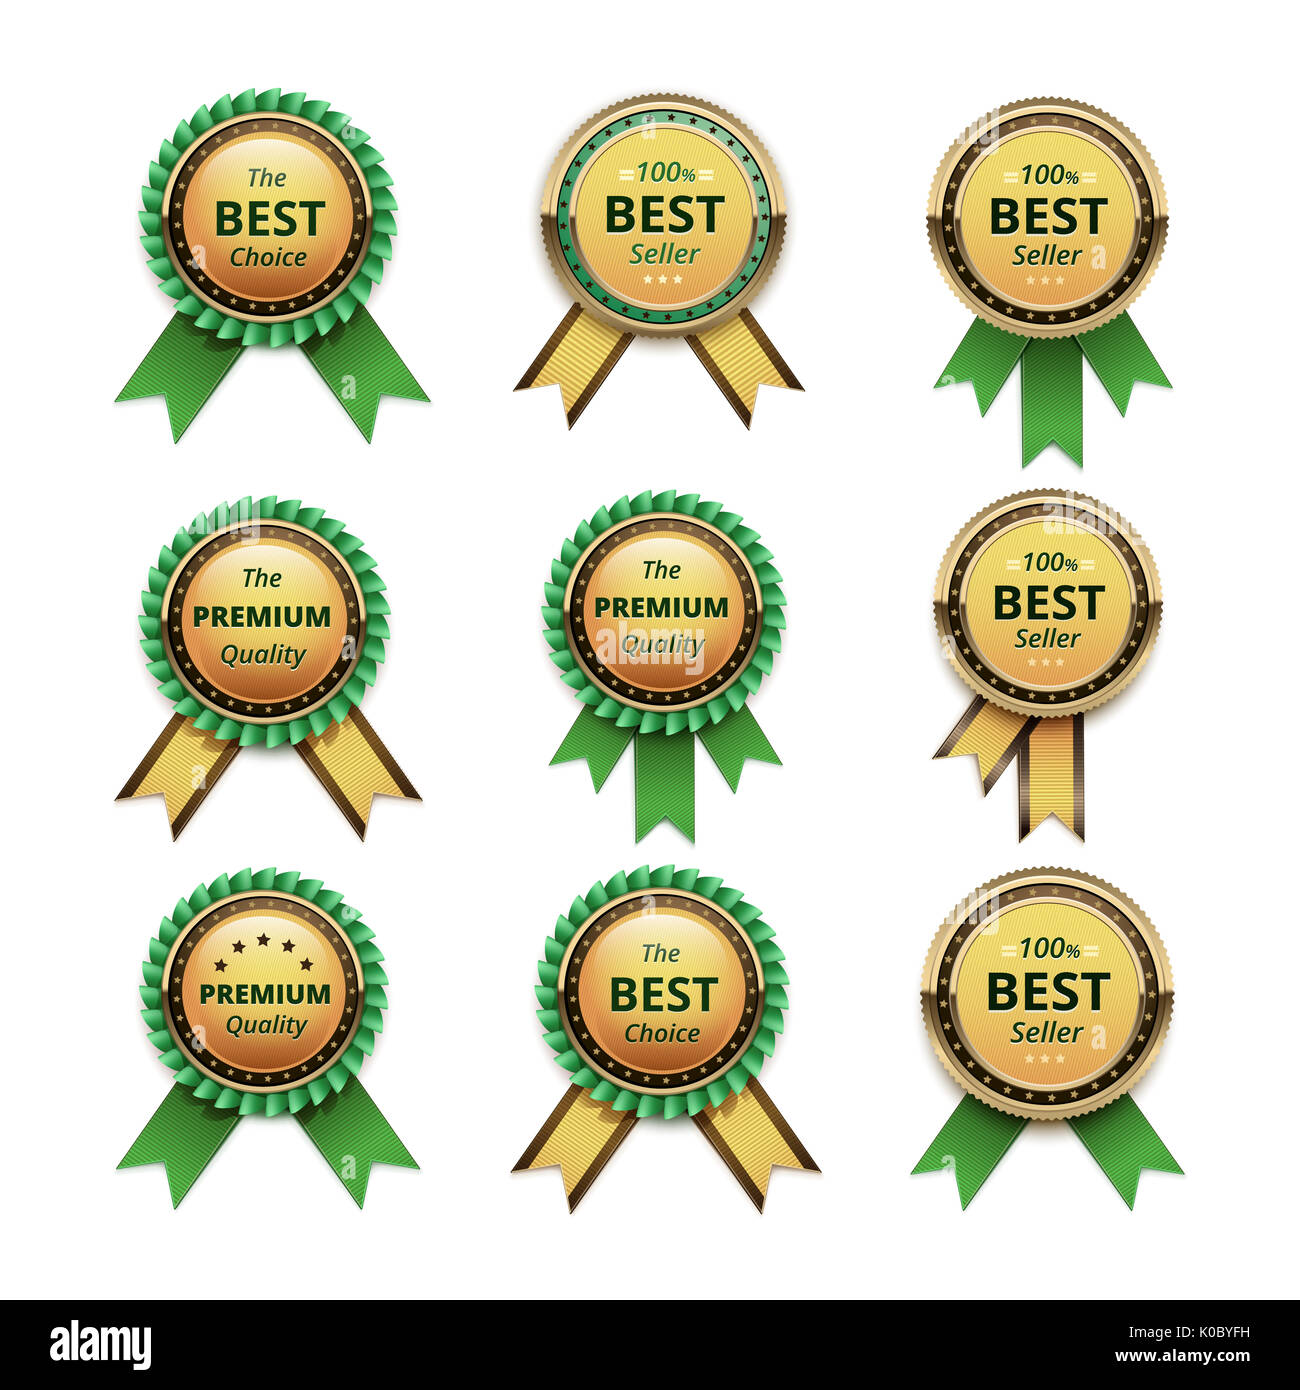 vector set of top quality guarantee golden labels with green ribbons close up isolated on white